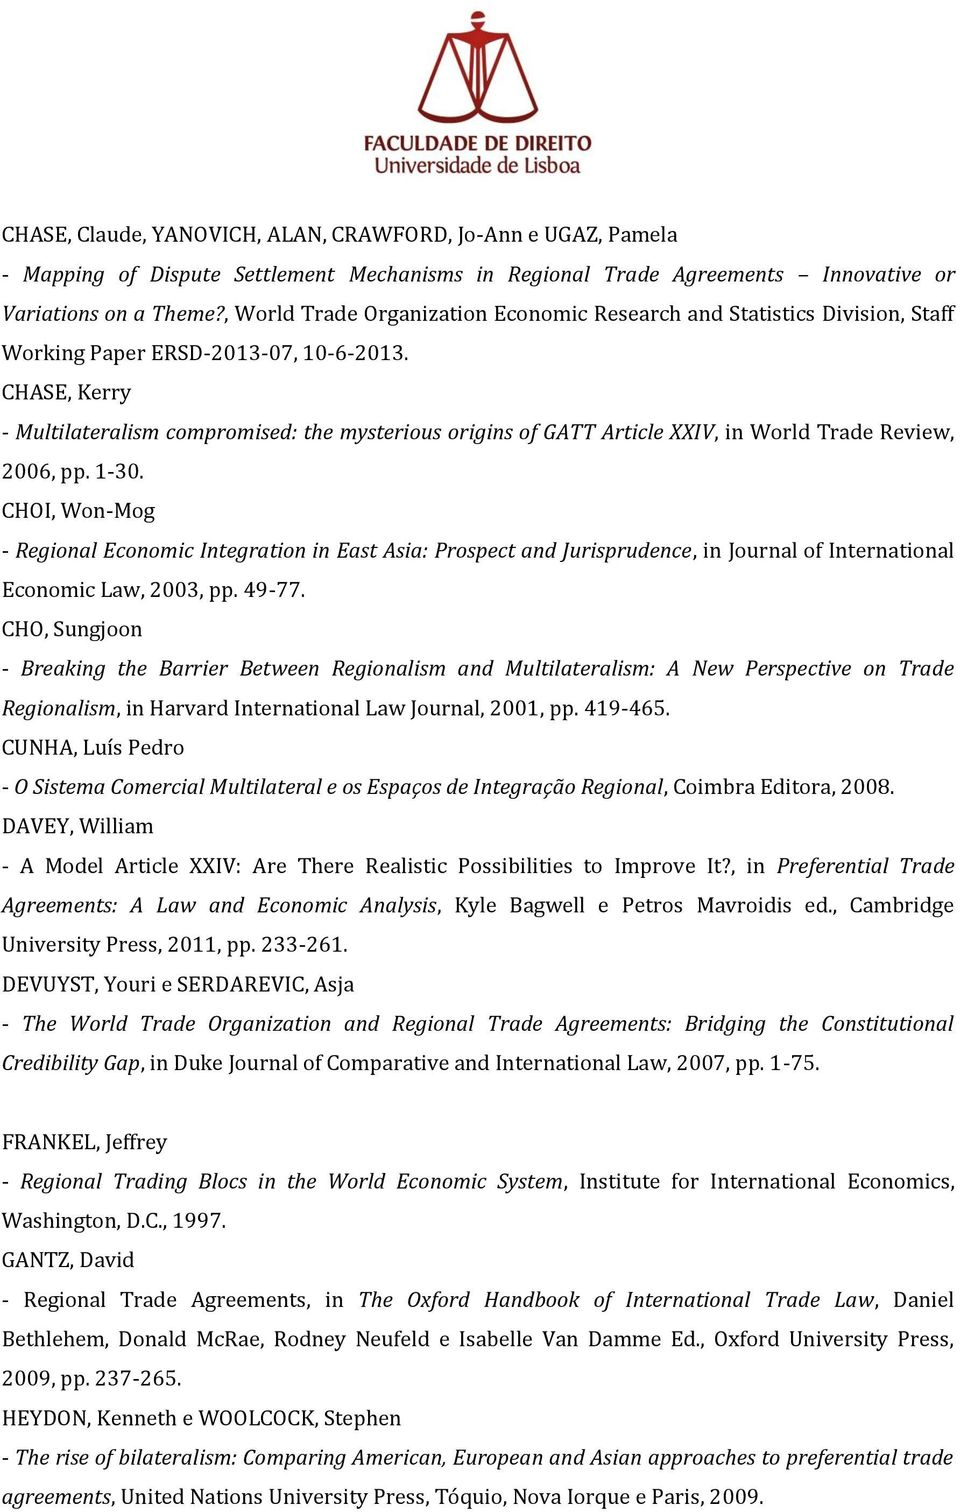 CHASE, Kerry - Multilateralism compromised: the mysterious origins of GATT Article XXIV, in World Trade Review, 2006, pp. 1-30.